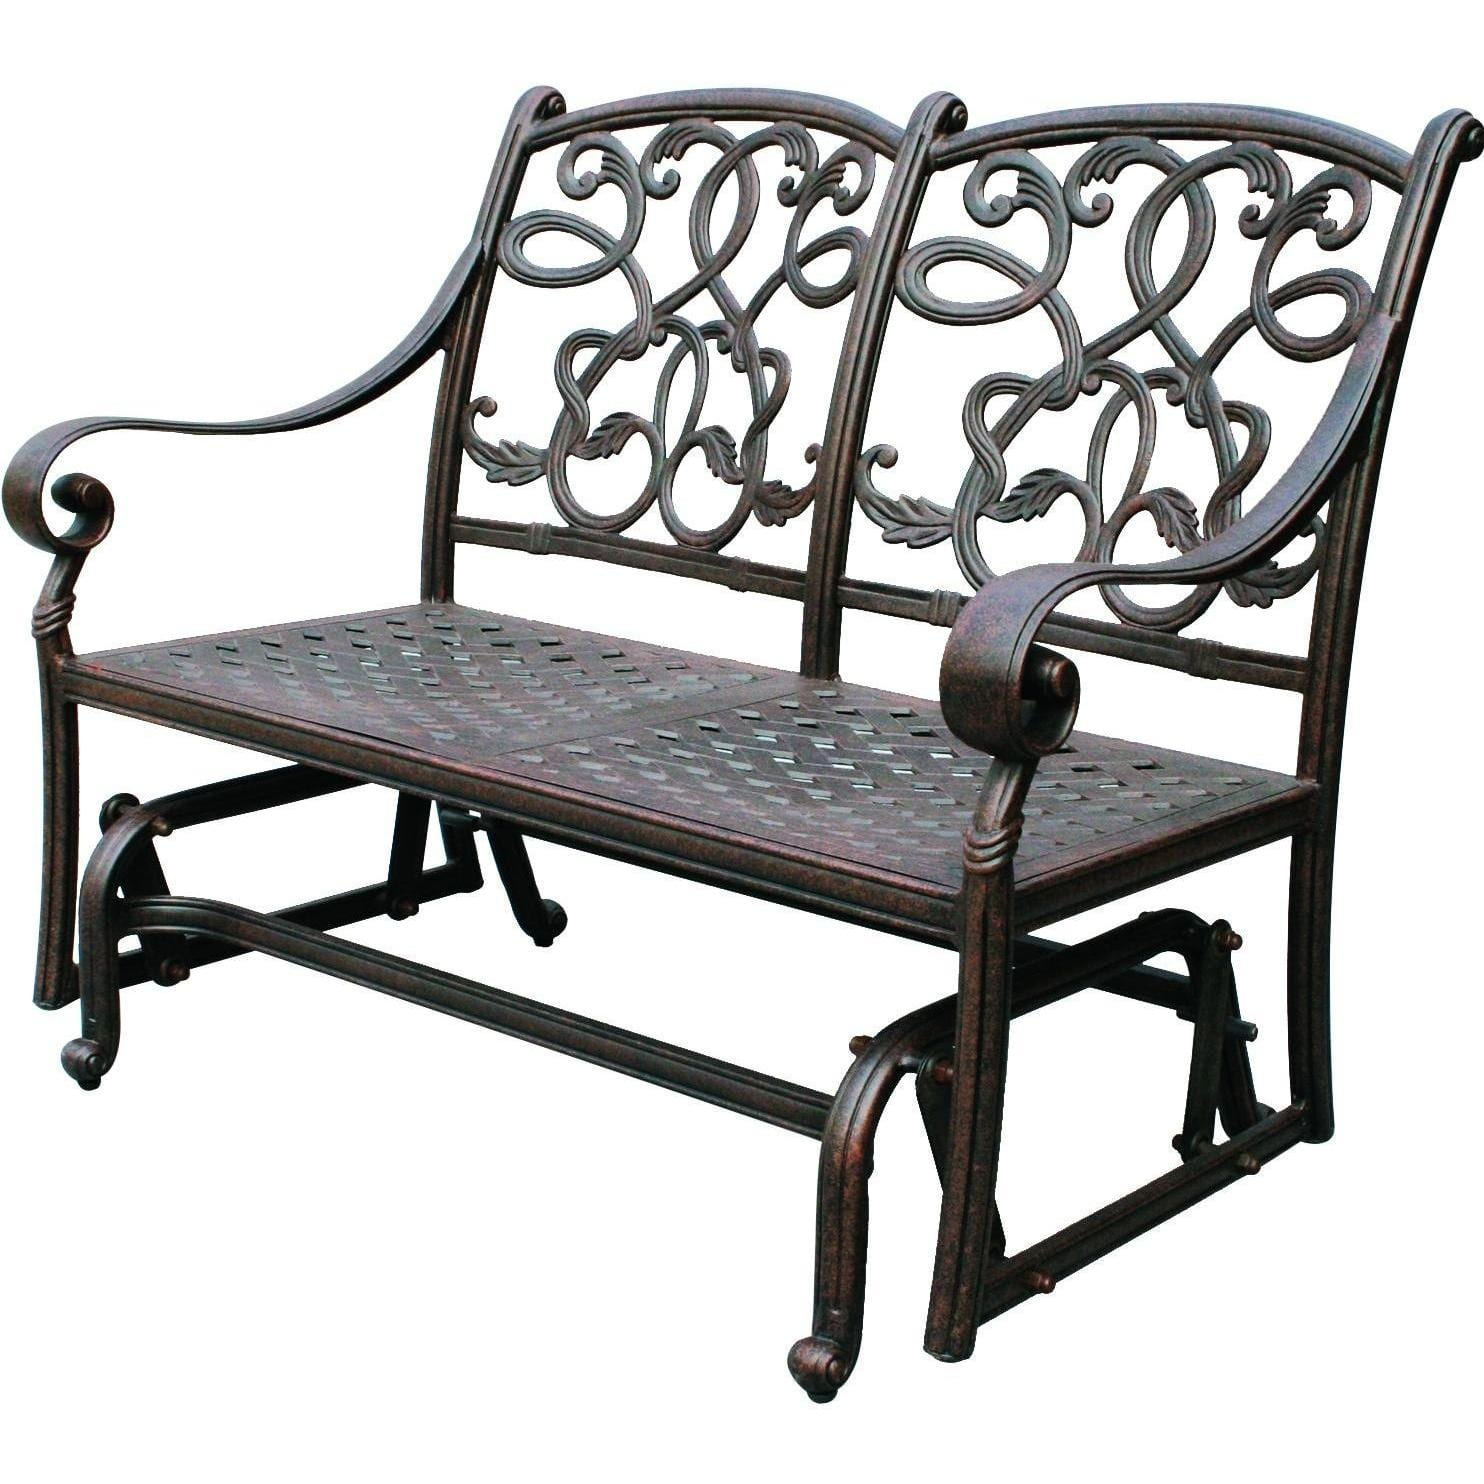 Darlee Santa Monica Patio Loveseat Glider